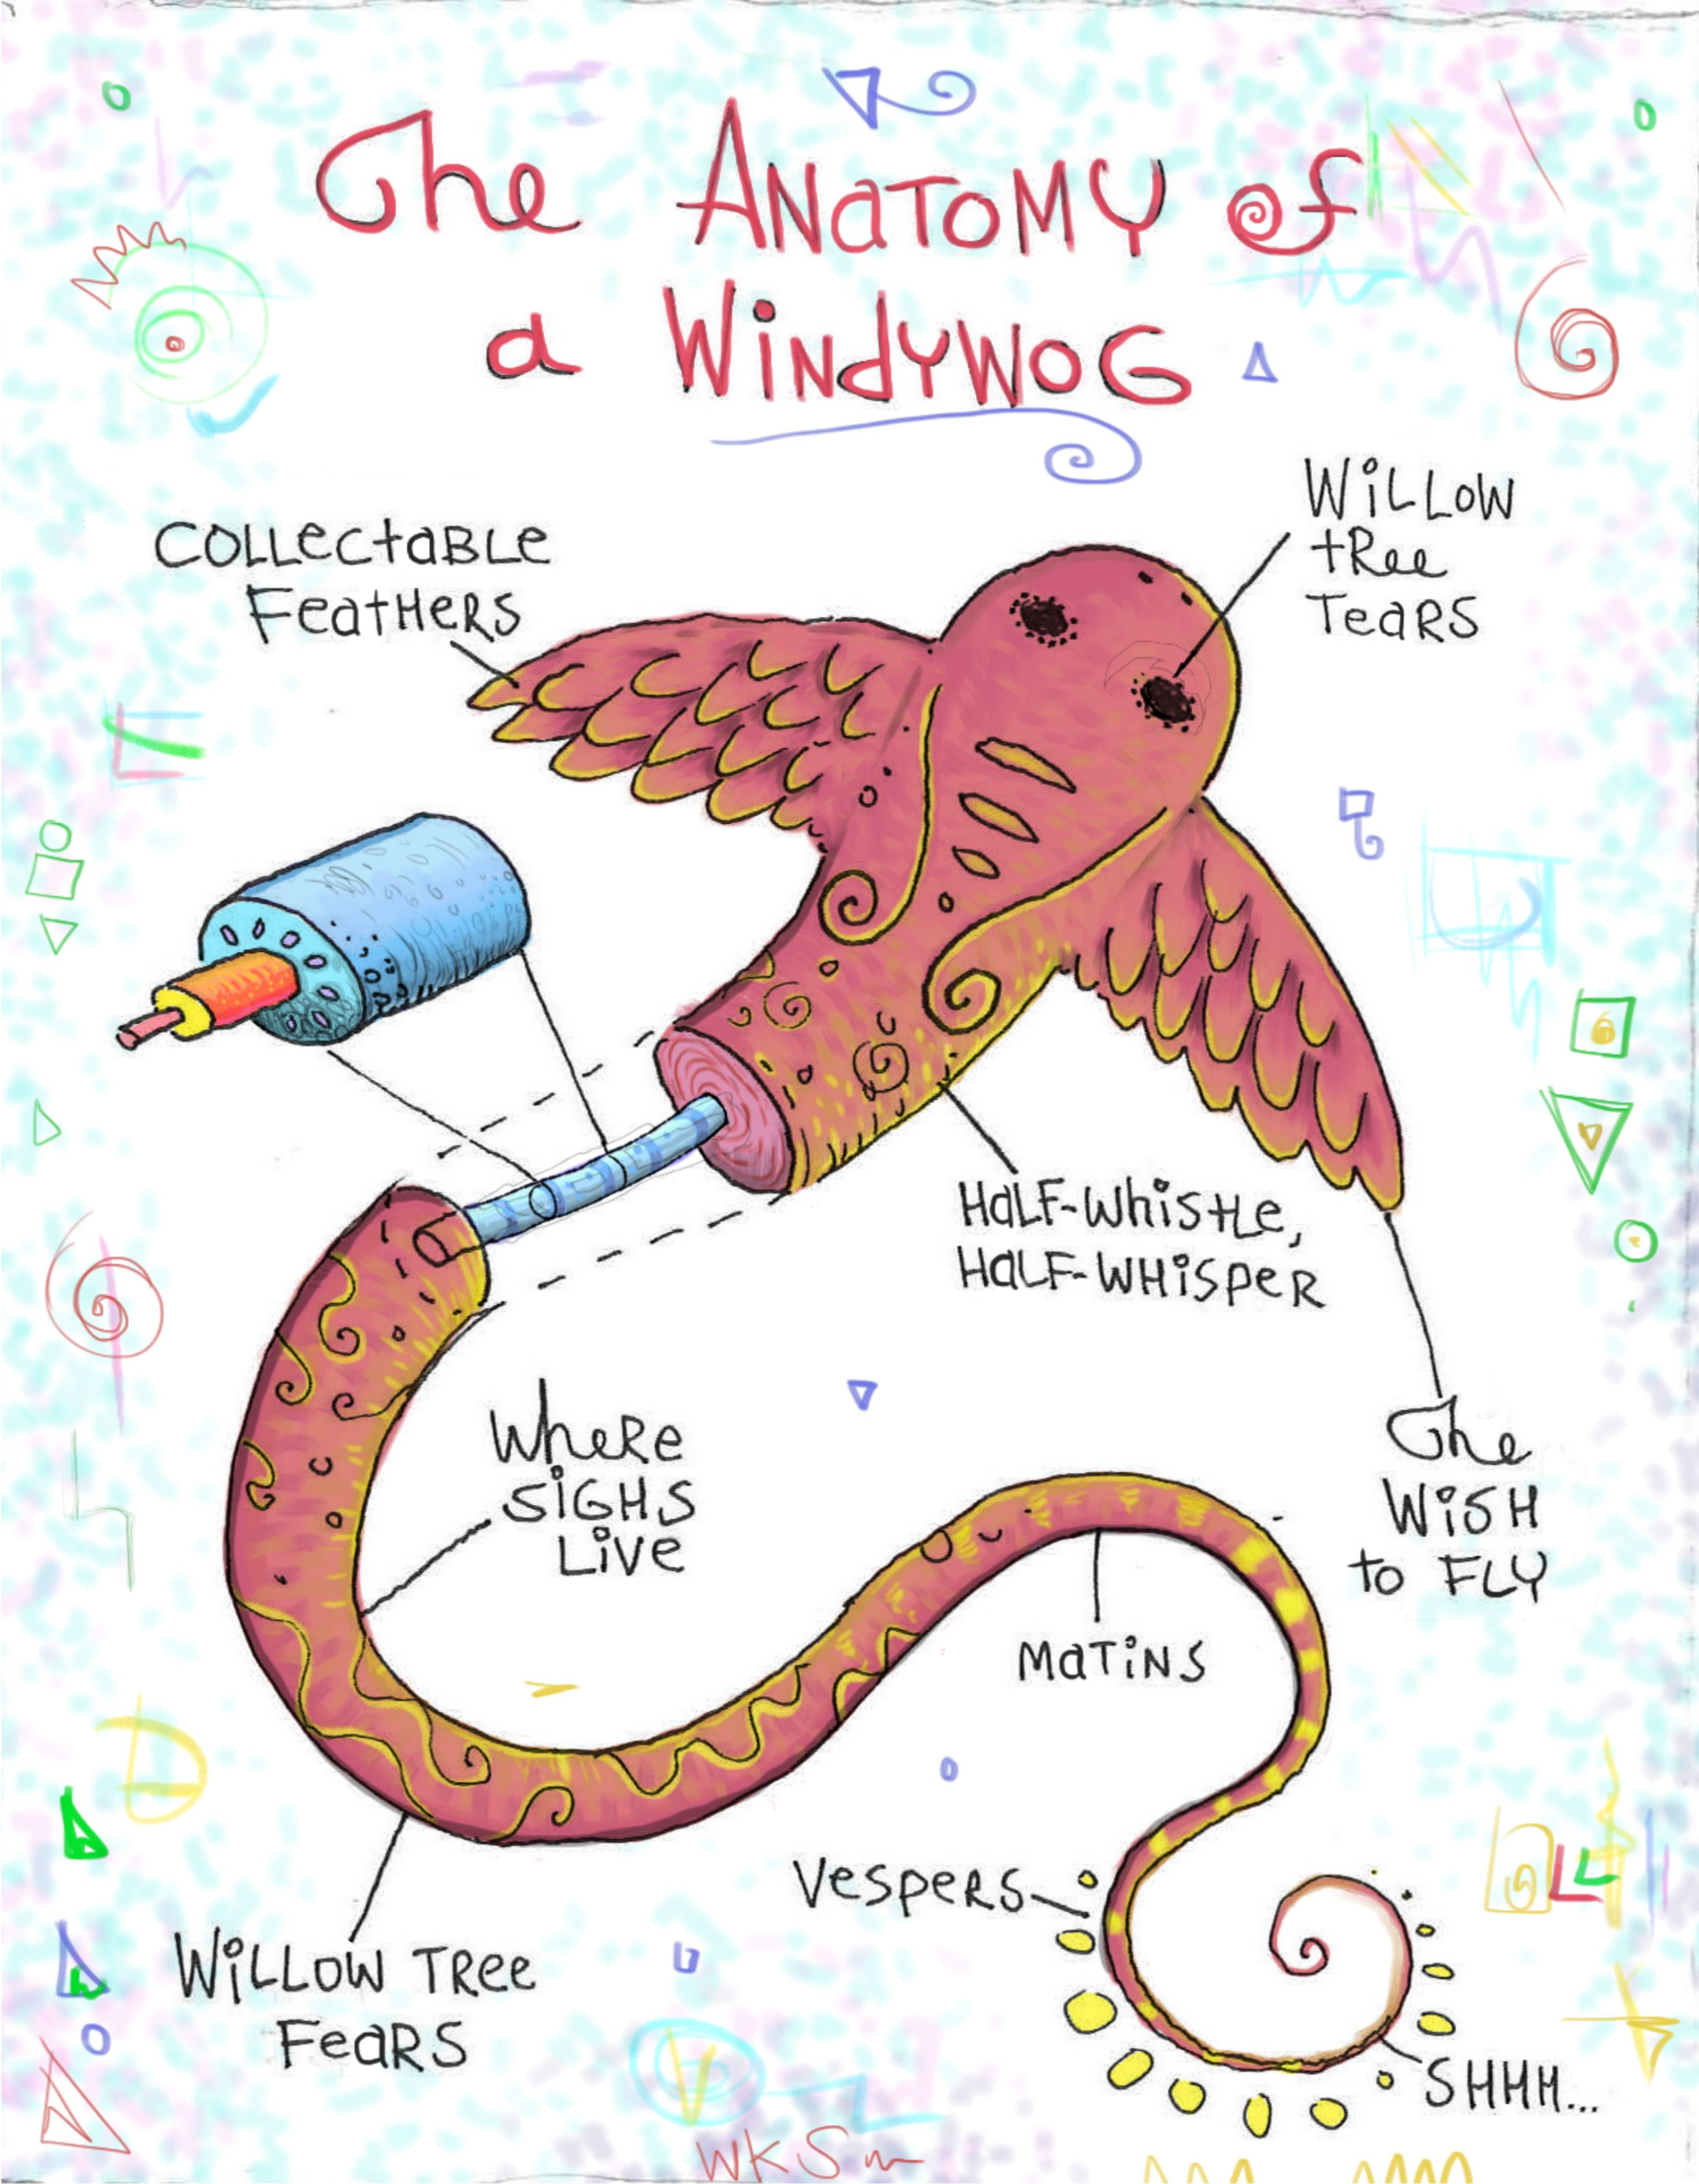 The Anatomy of a Windywog